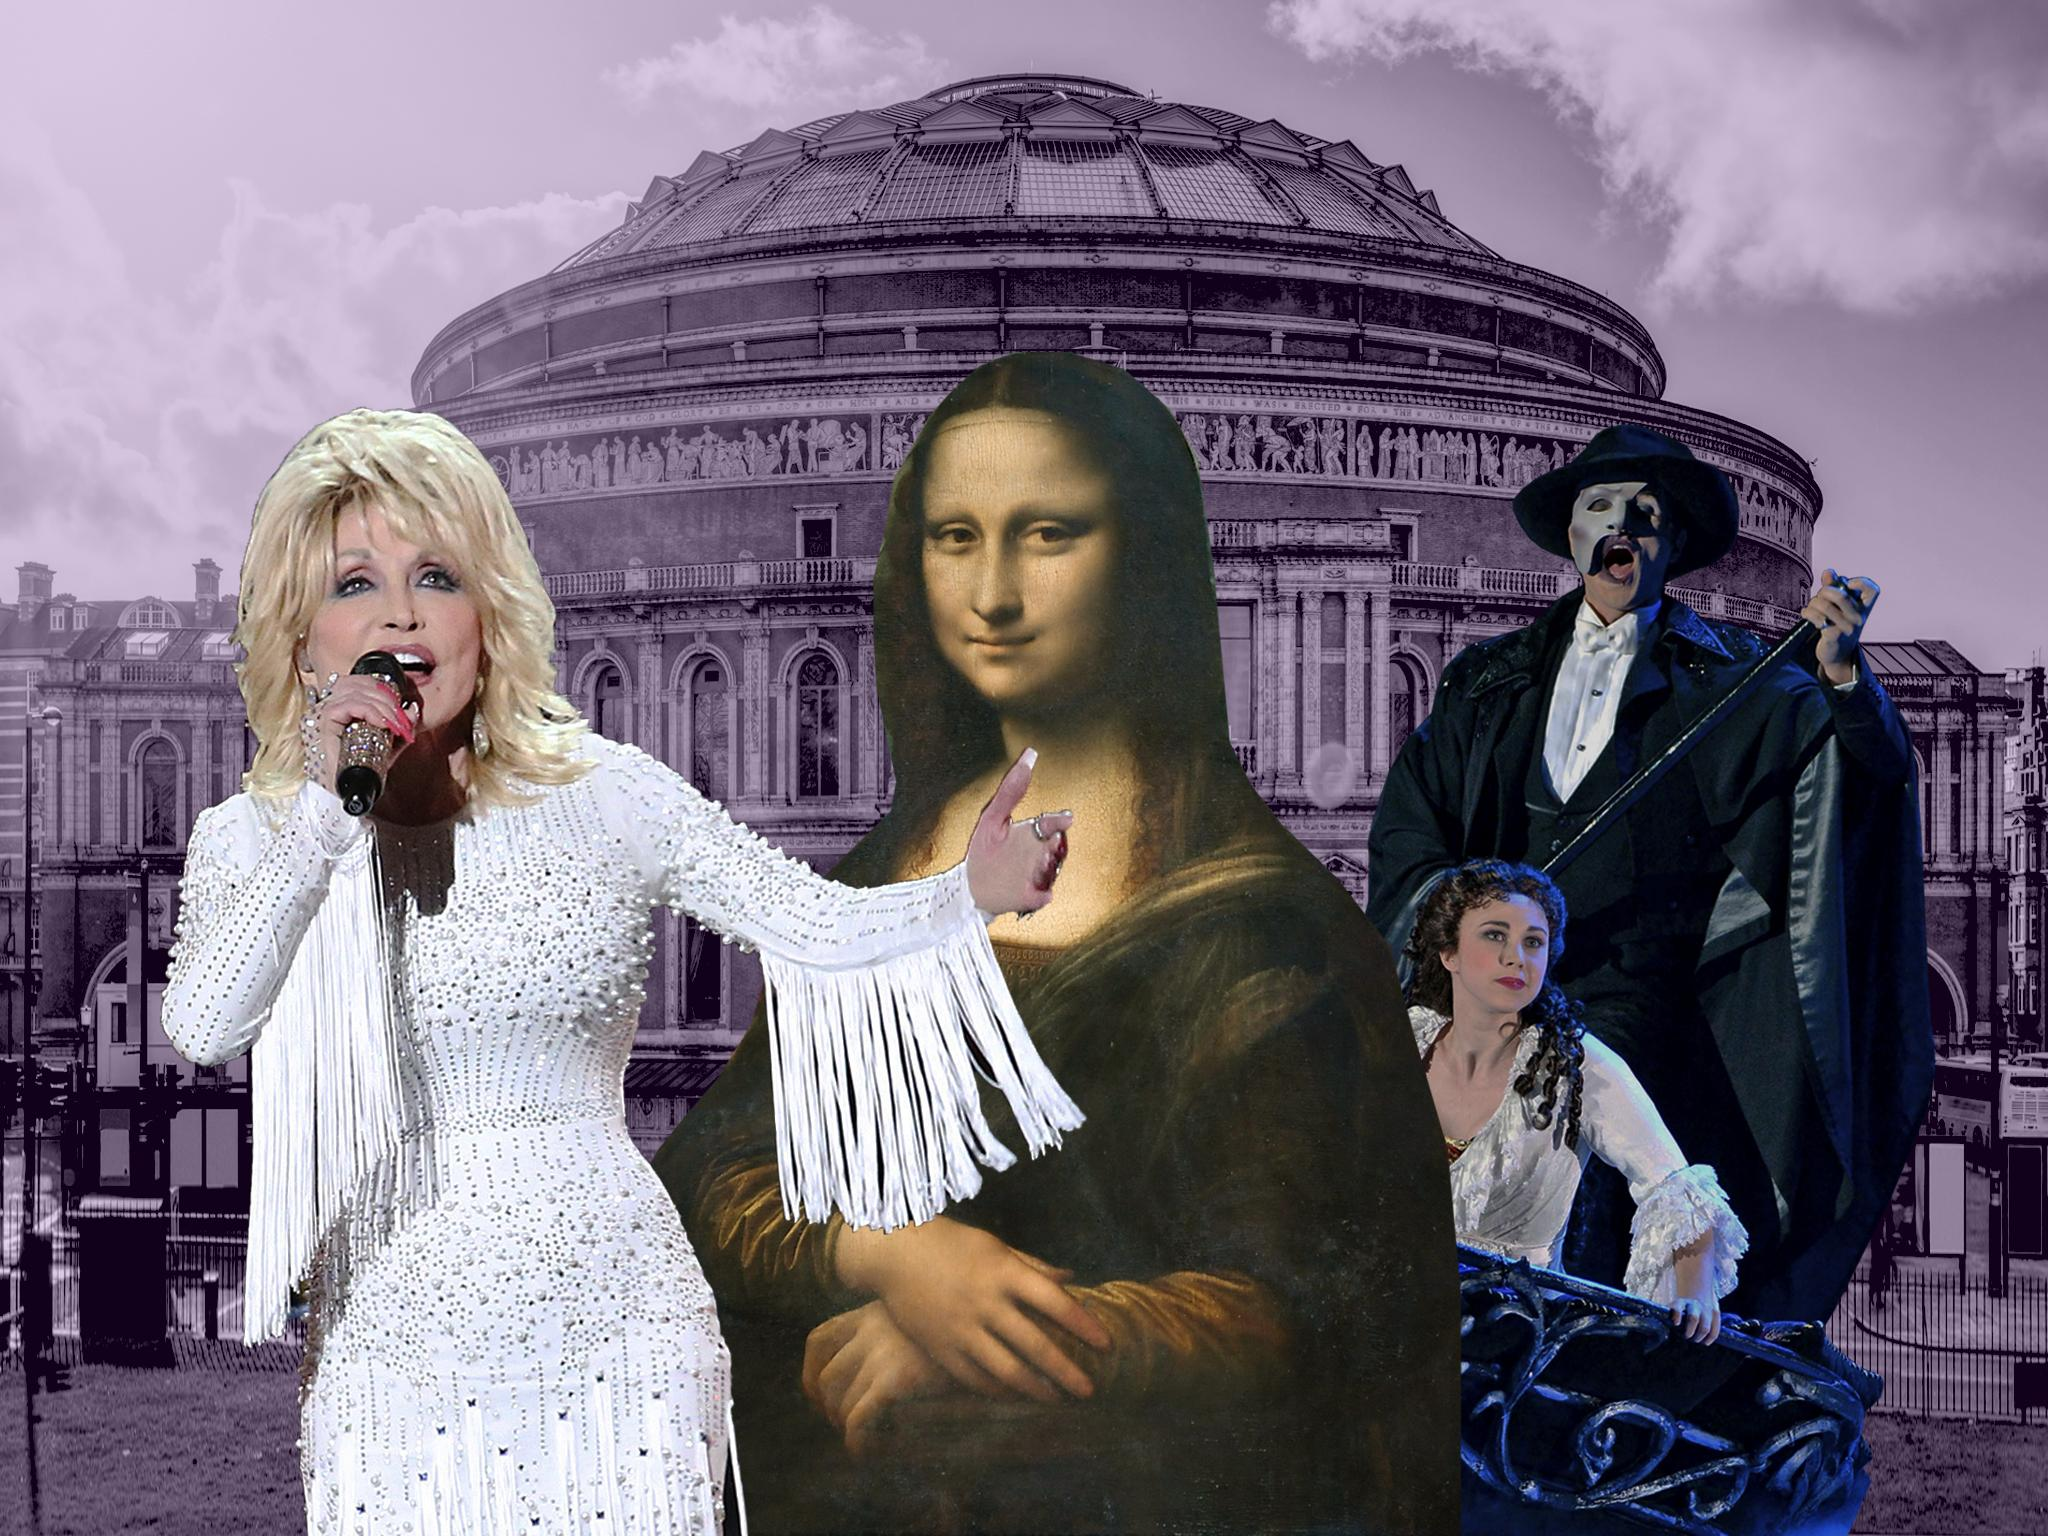 The best live concerts, virtual gallery tours and musical theatre to enjoy from home every weekend